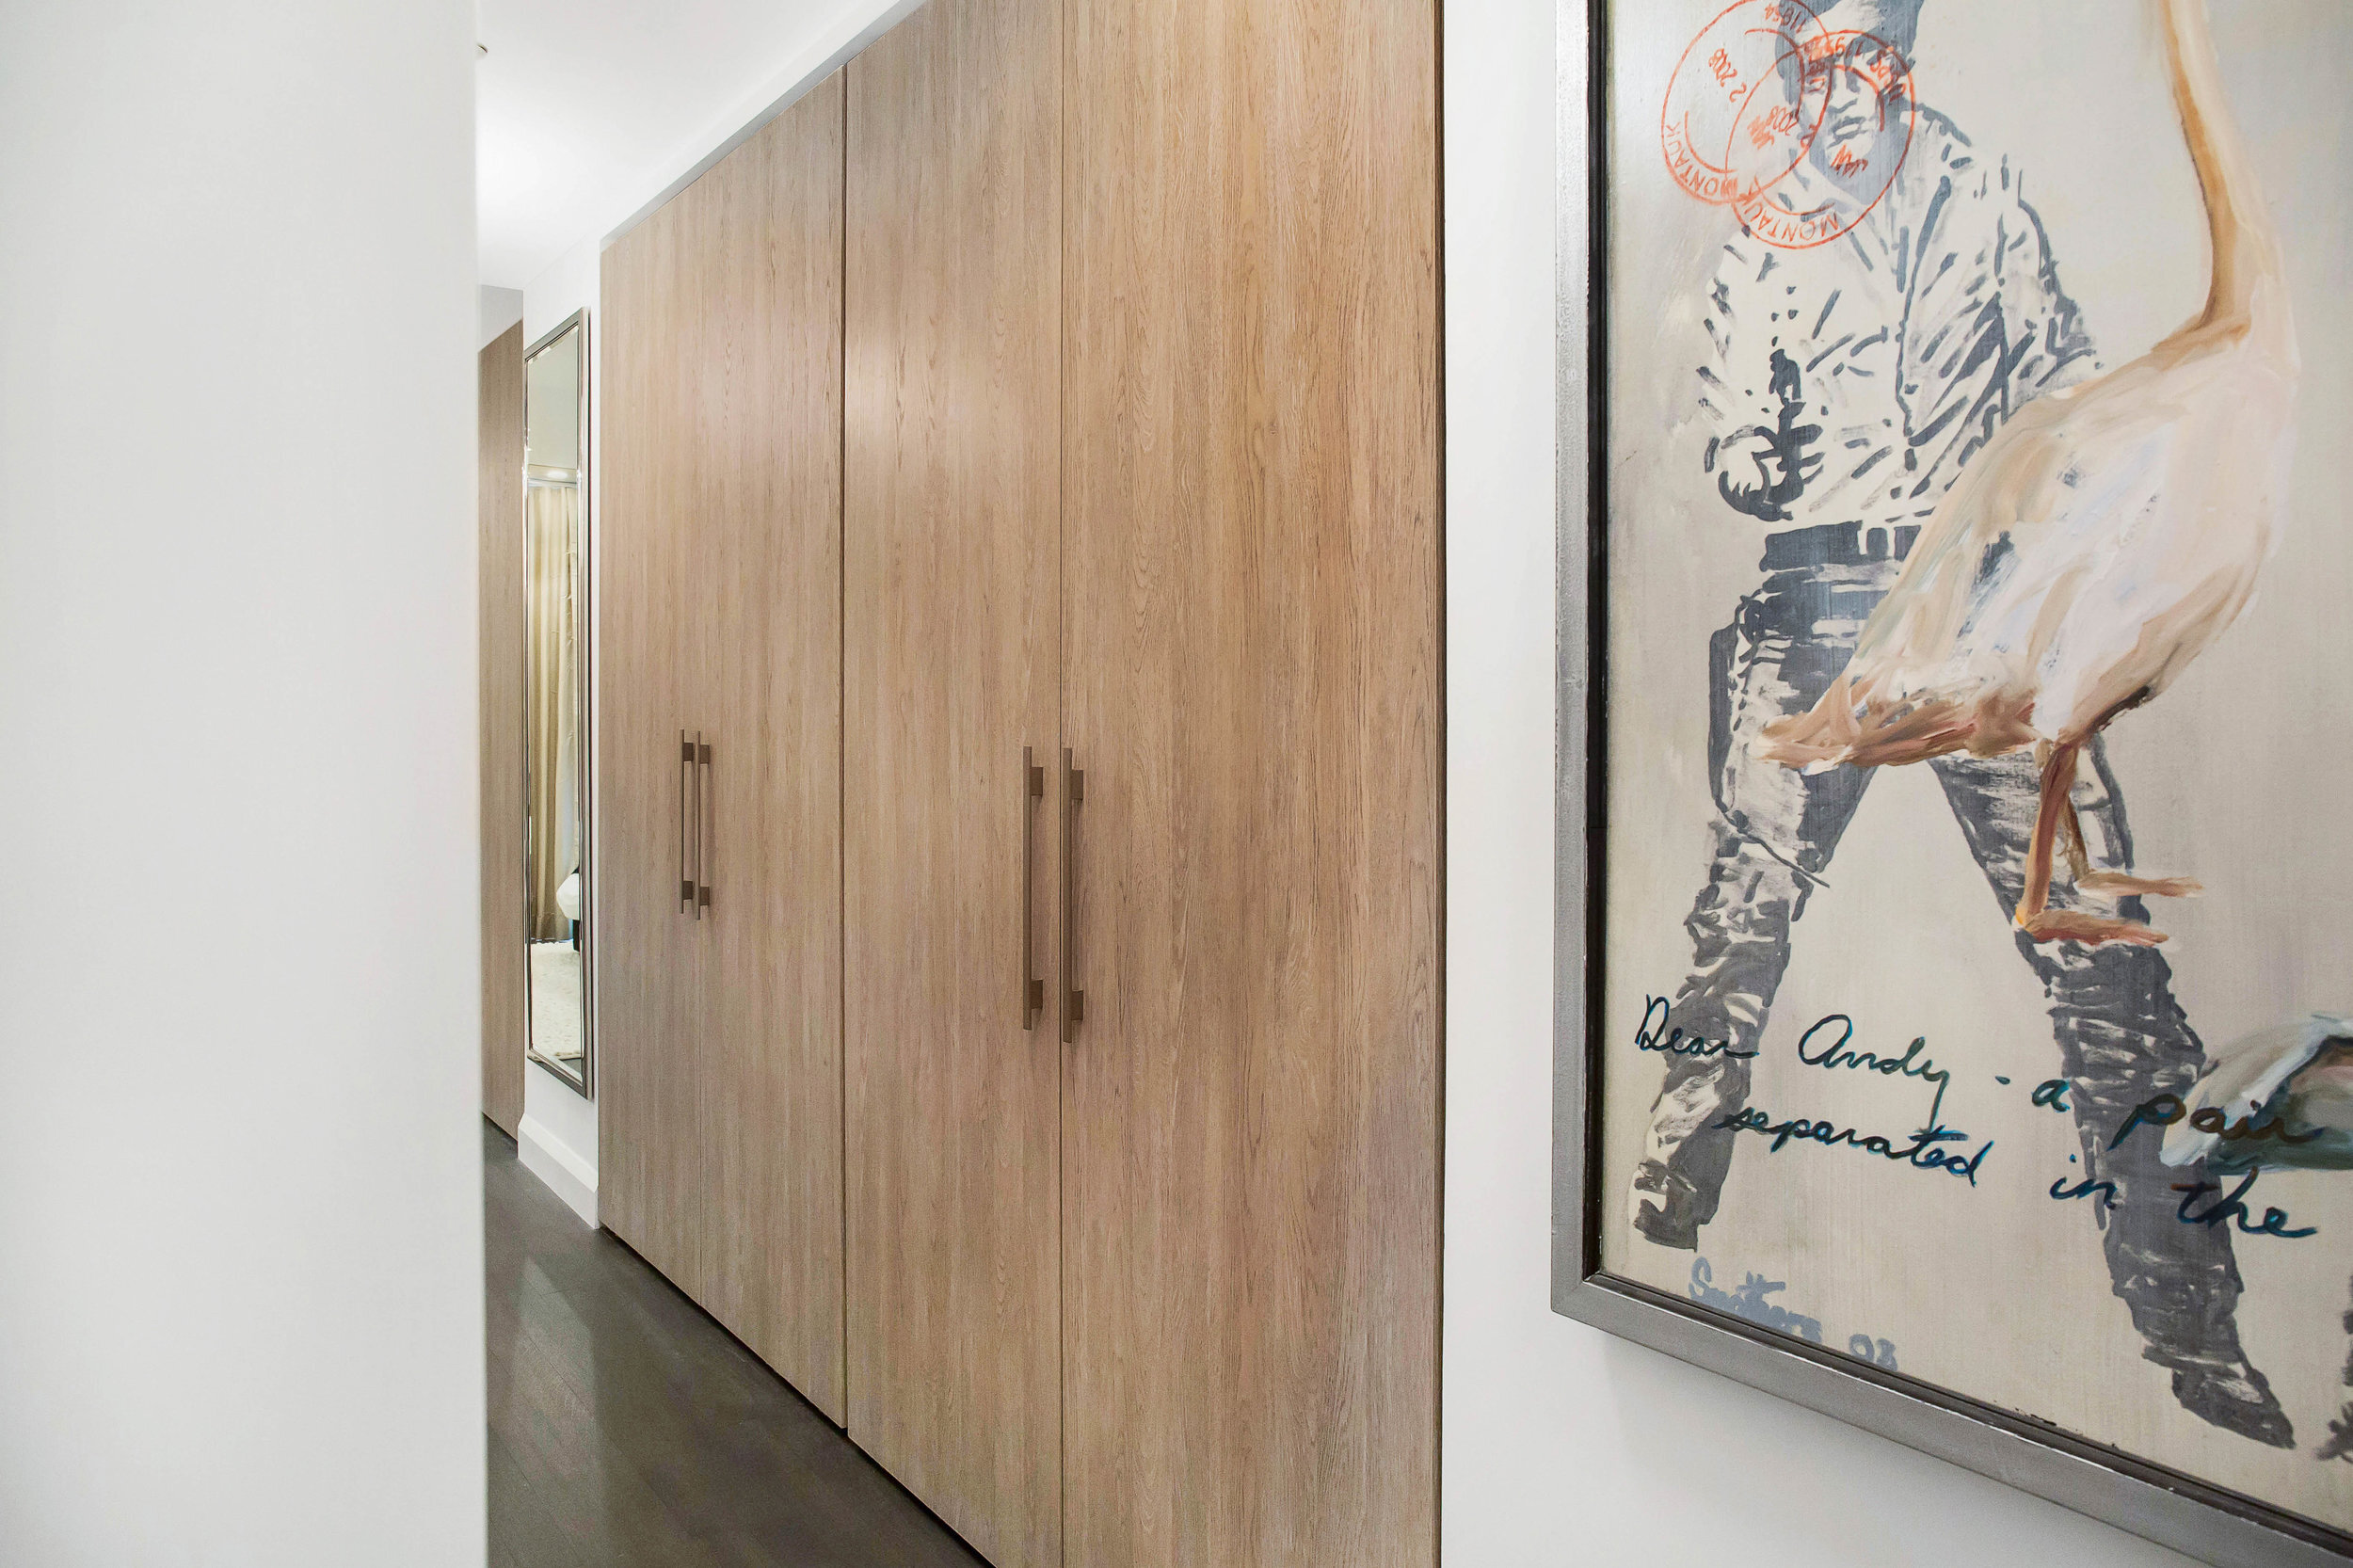 residential-projects-Chelsea-comp9.jpg